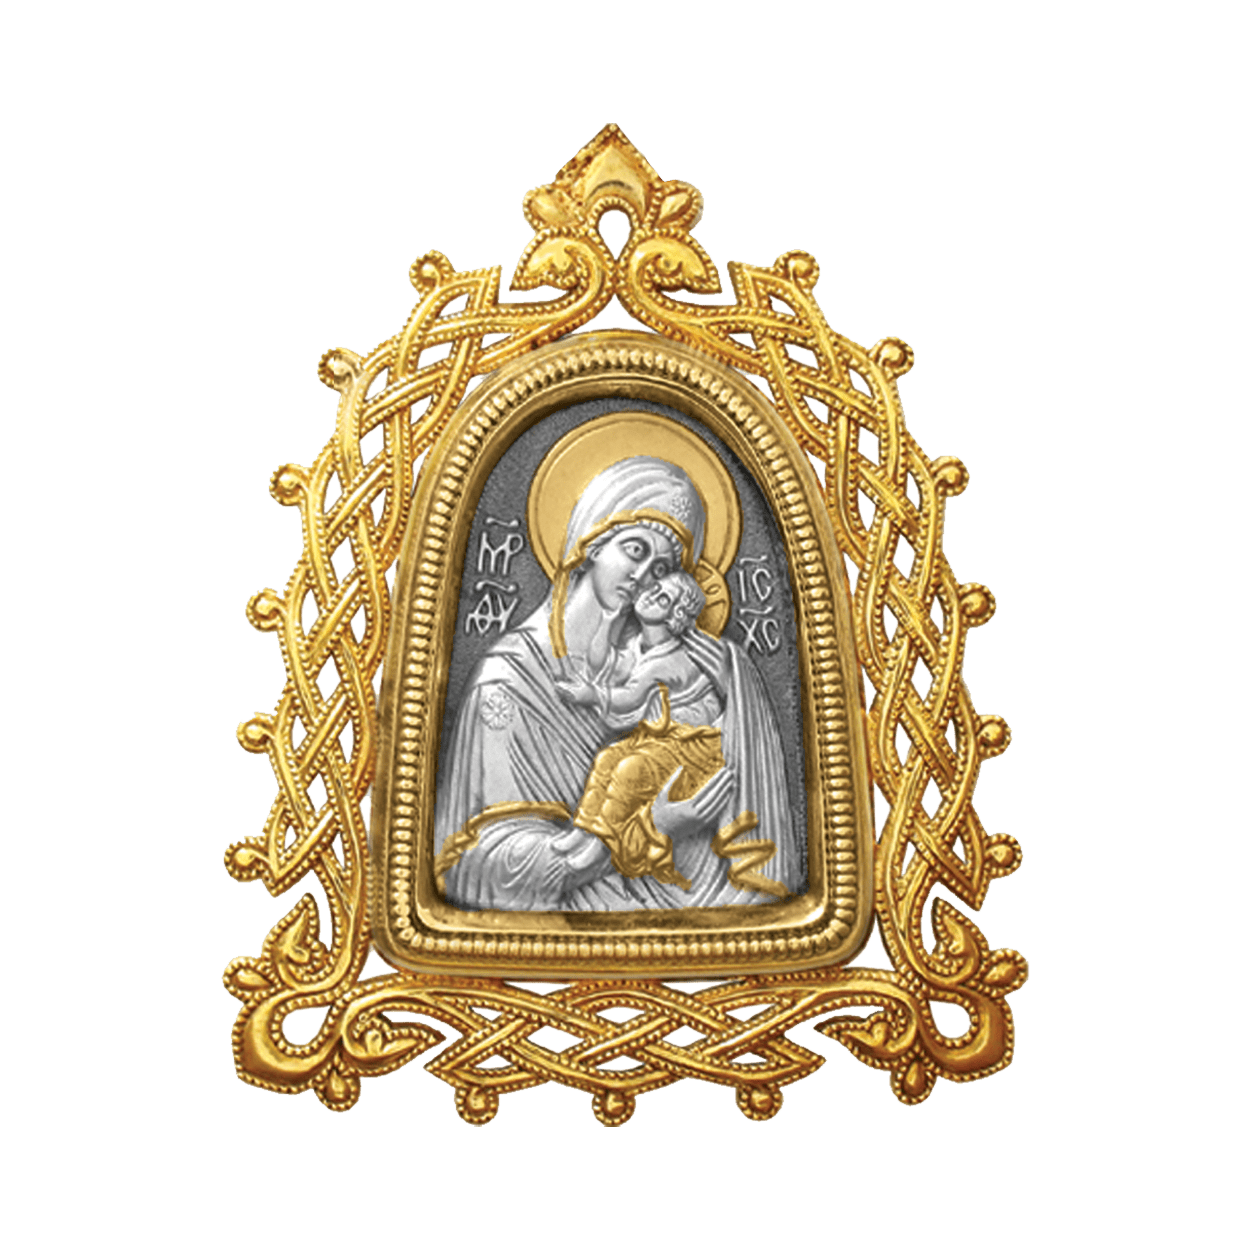 Russian-Orthodox-Icon-silver-medal-pendant-OUR-LADY-OF-YAROSLAVL-with-openwork-frame-Master-Jeweler-Fedorov